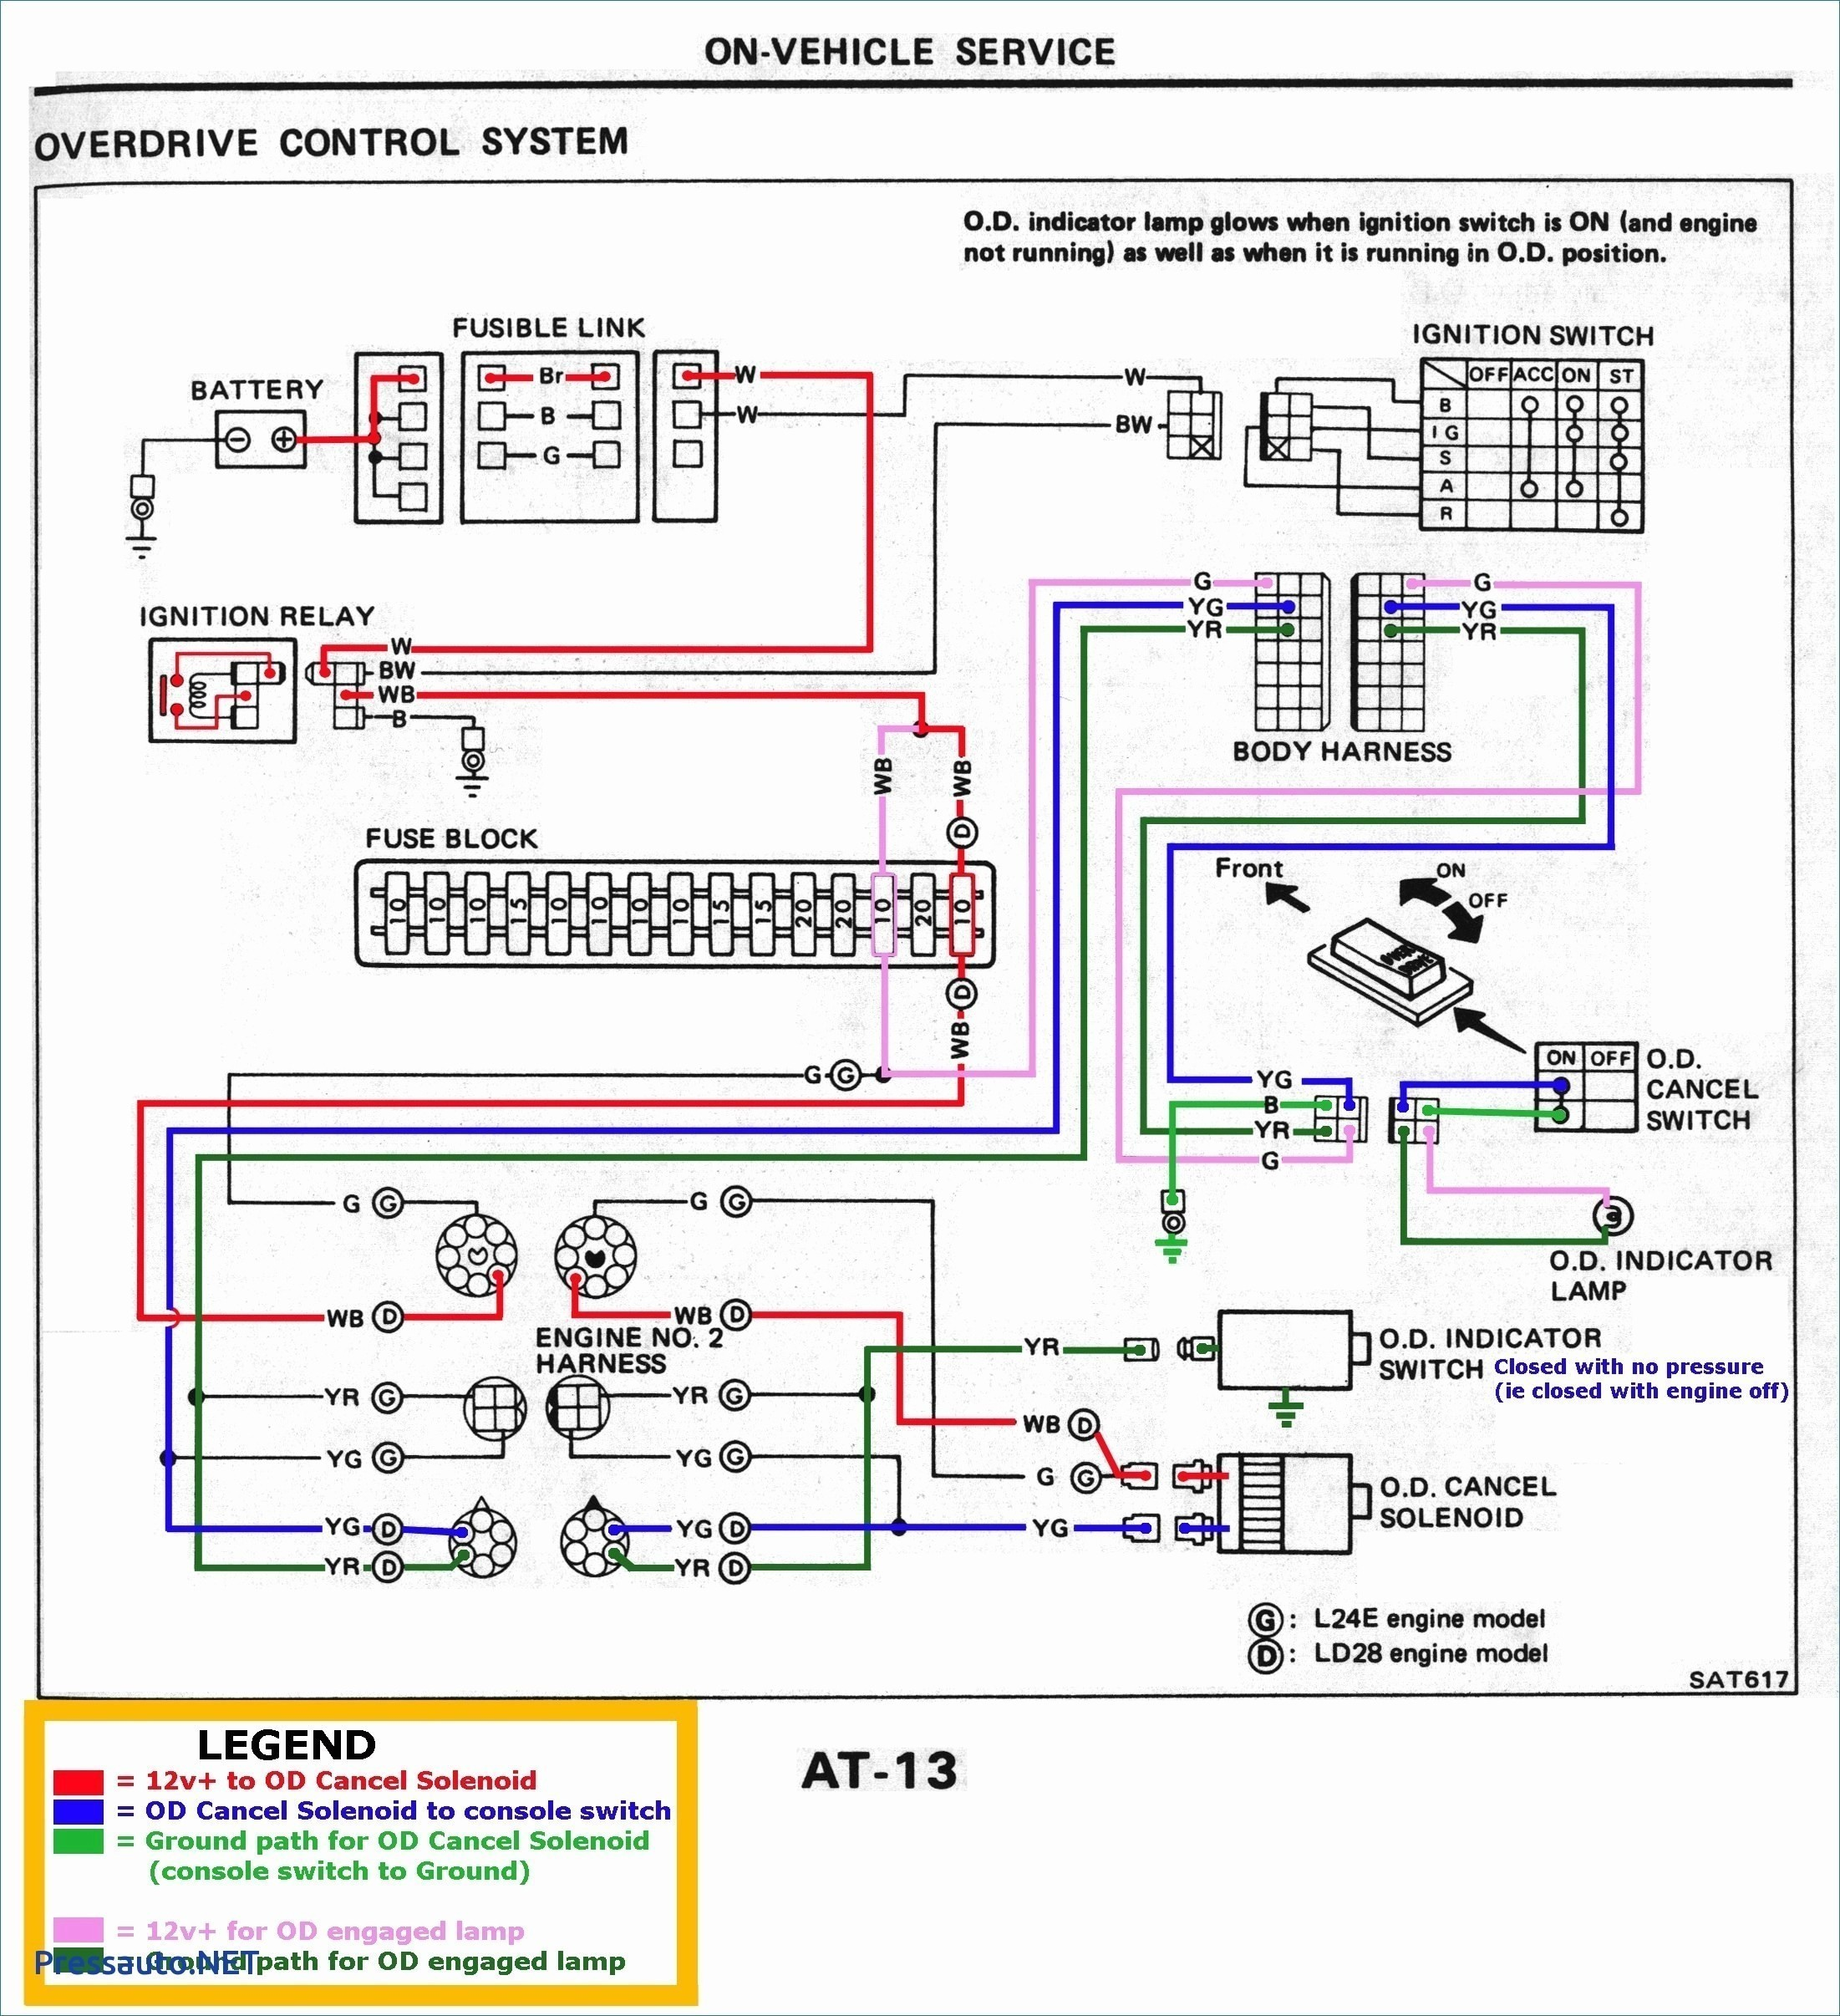 1998 Bmw Wiring Diagrams Ignition - Lg Washing Machine Wiring Diagram -  fusebox.tukune.jeanjaures37.fr | 1998 Bmw Wiring Diagrams Ignition |  | Wiring Diagram Resource